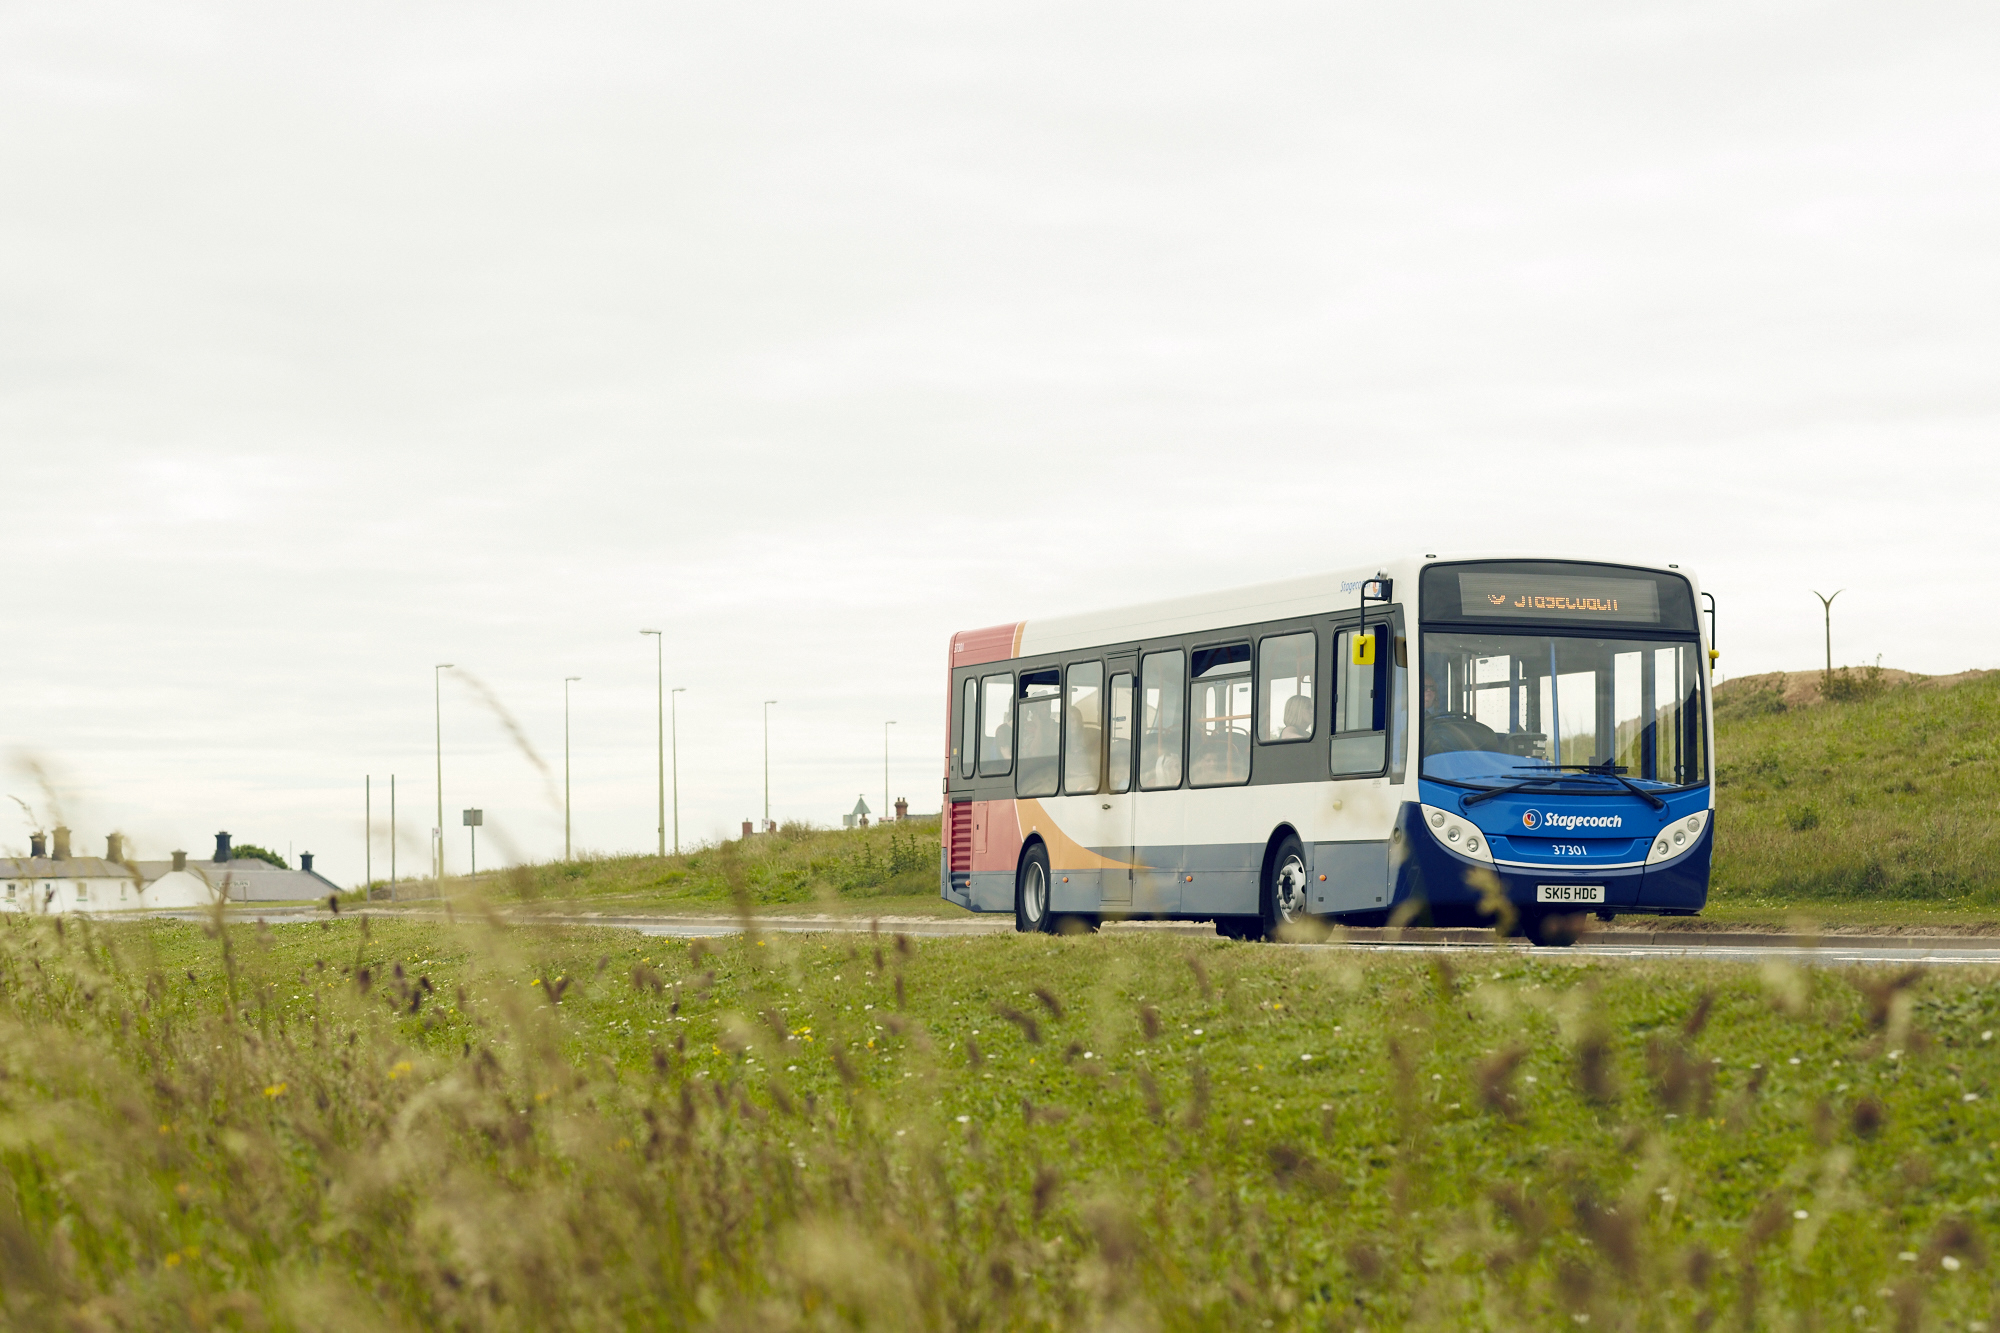 Stagecoach bus: Use of concessionary bus passes is being extended to help the elderly